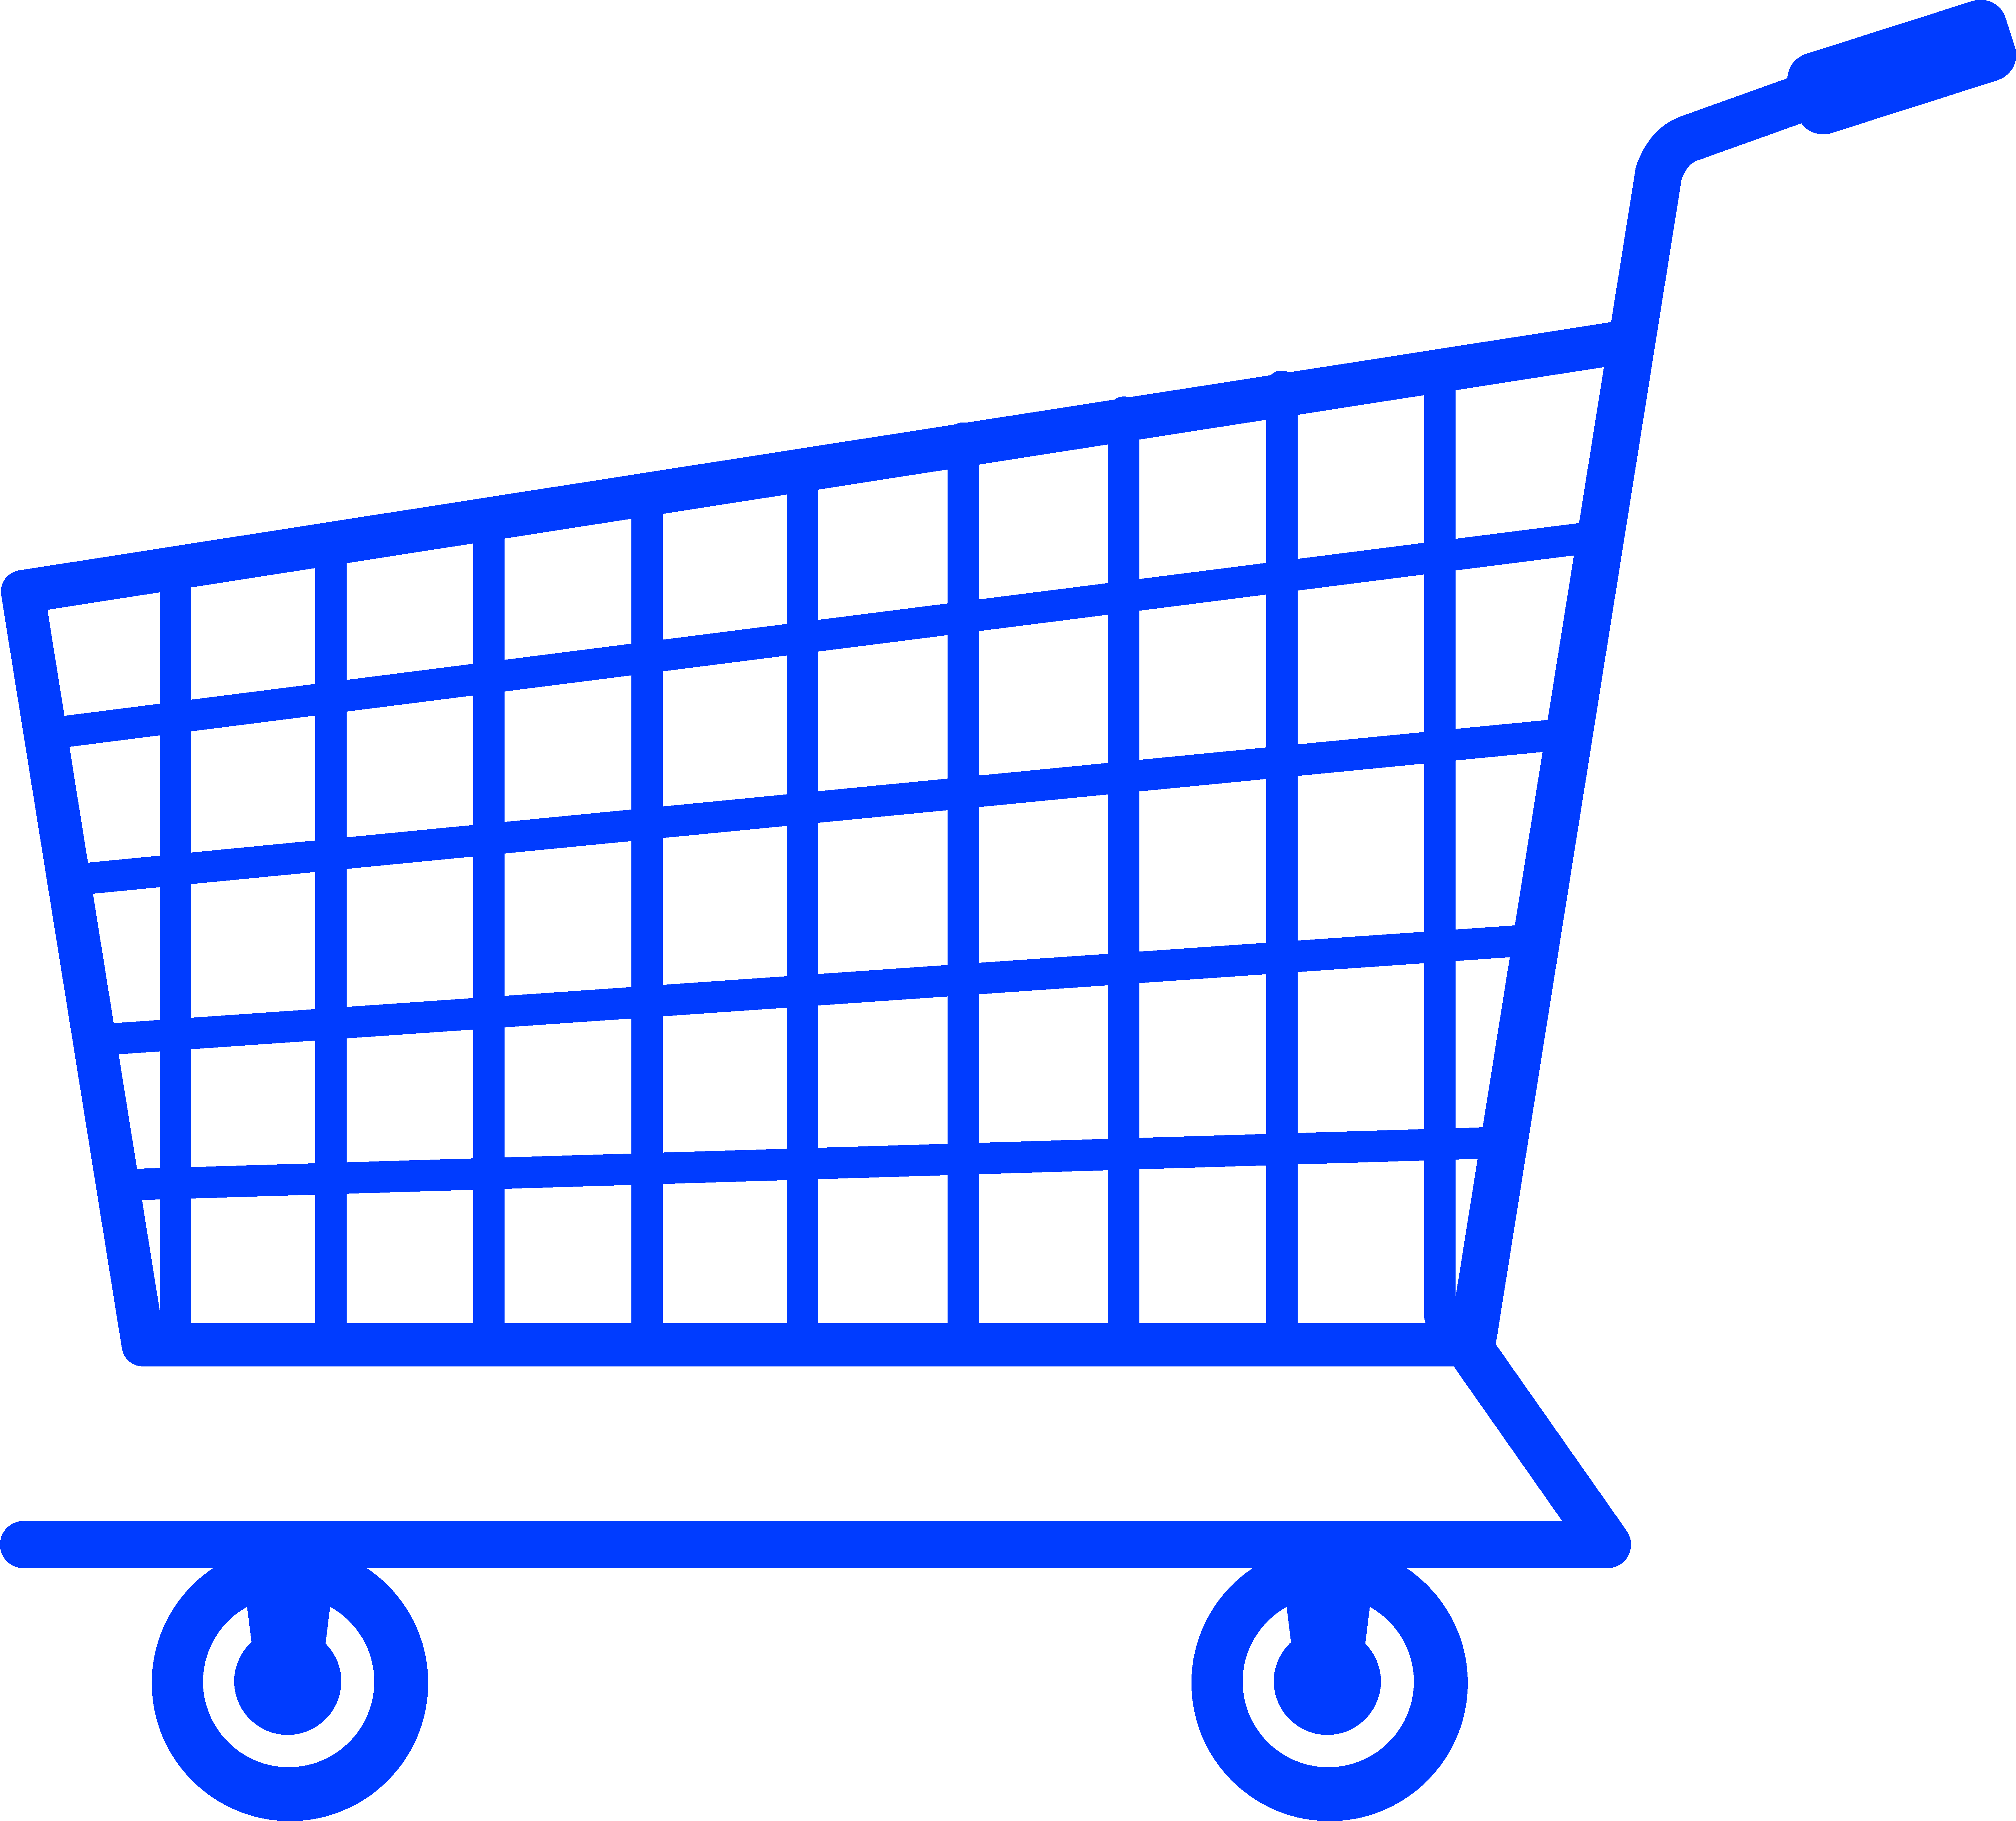 black and white download Supermarket clipart. Simple blue shopping cart